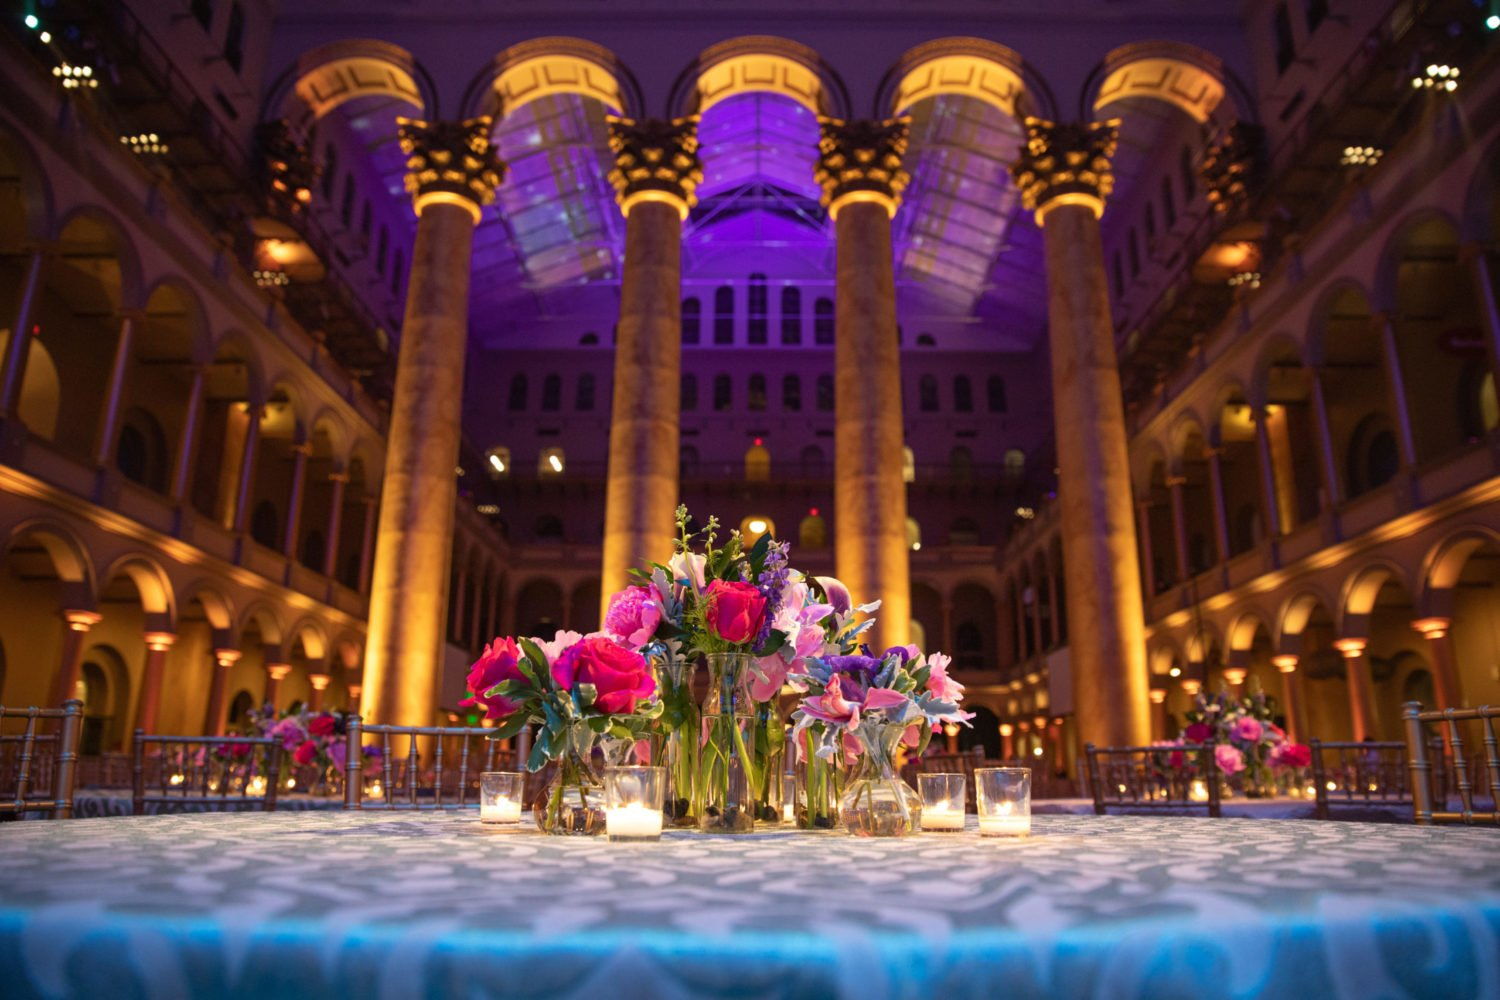 Photos from the 2019 National Building Museum Gala